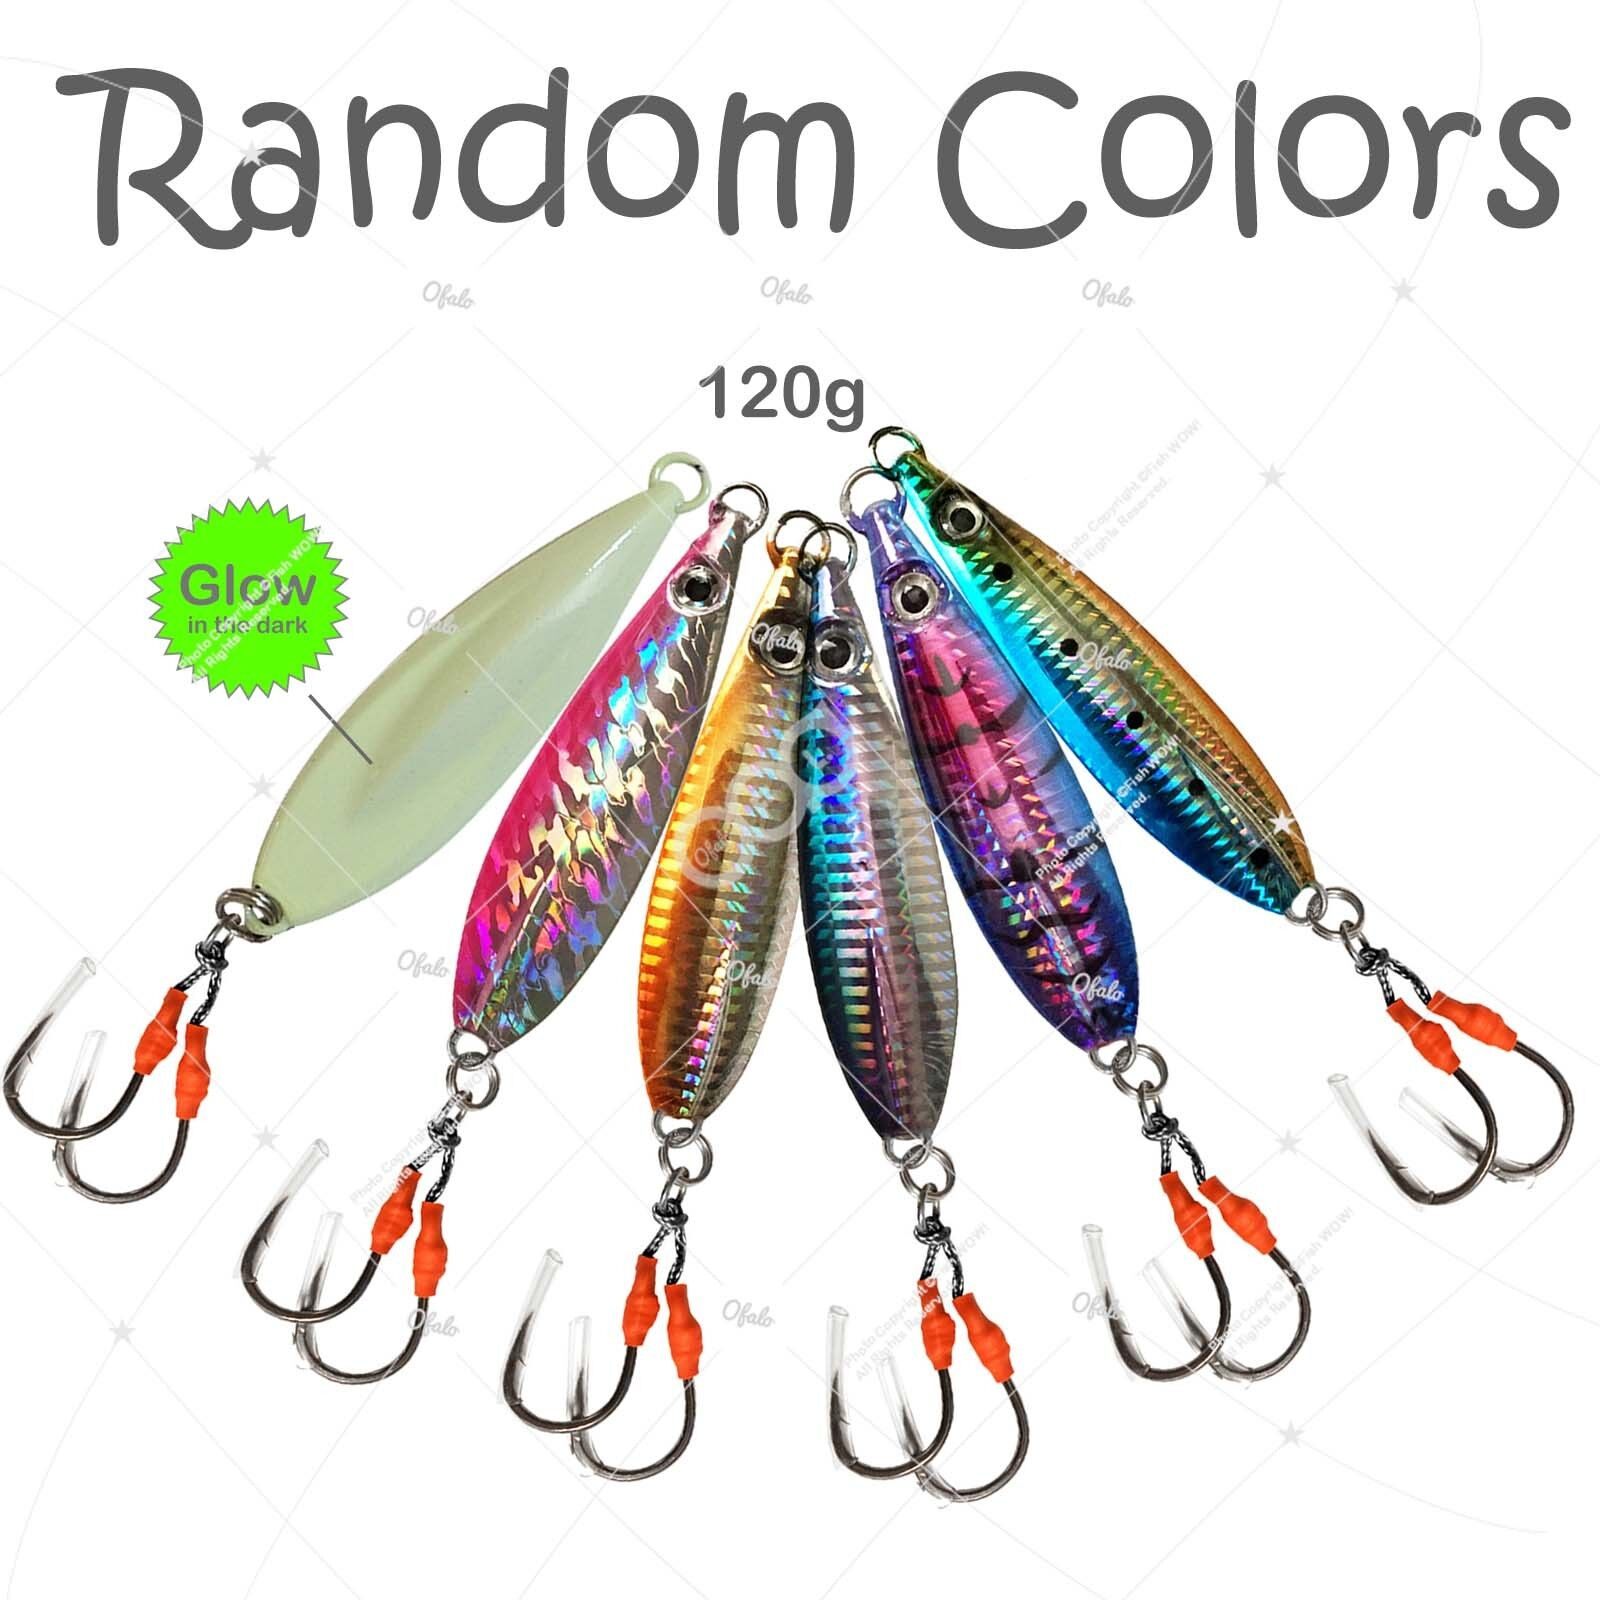 5pcs 120g Fishing Flat Fish Jig 4.2oz Speed verdeical Metal Lure jig Reom Coloreee